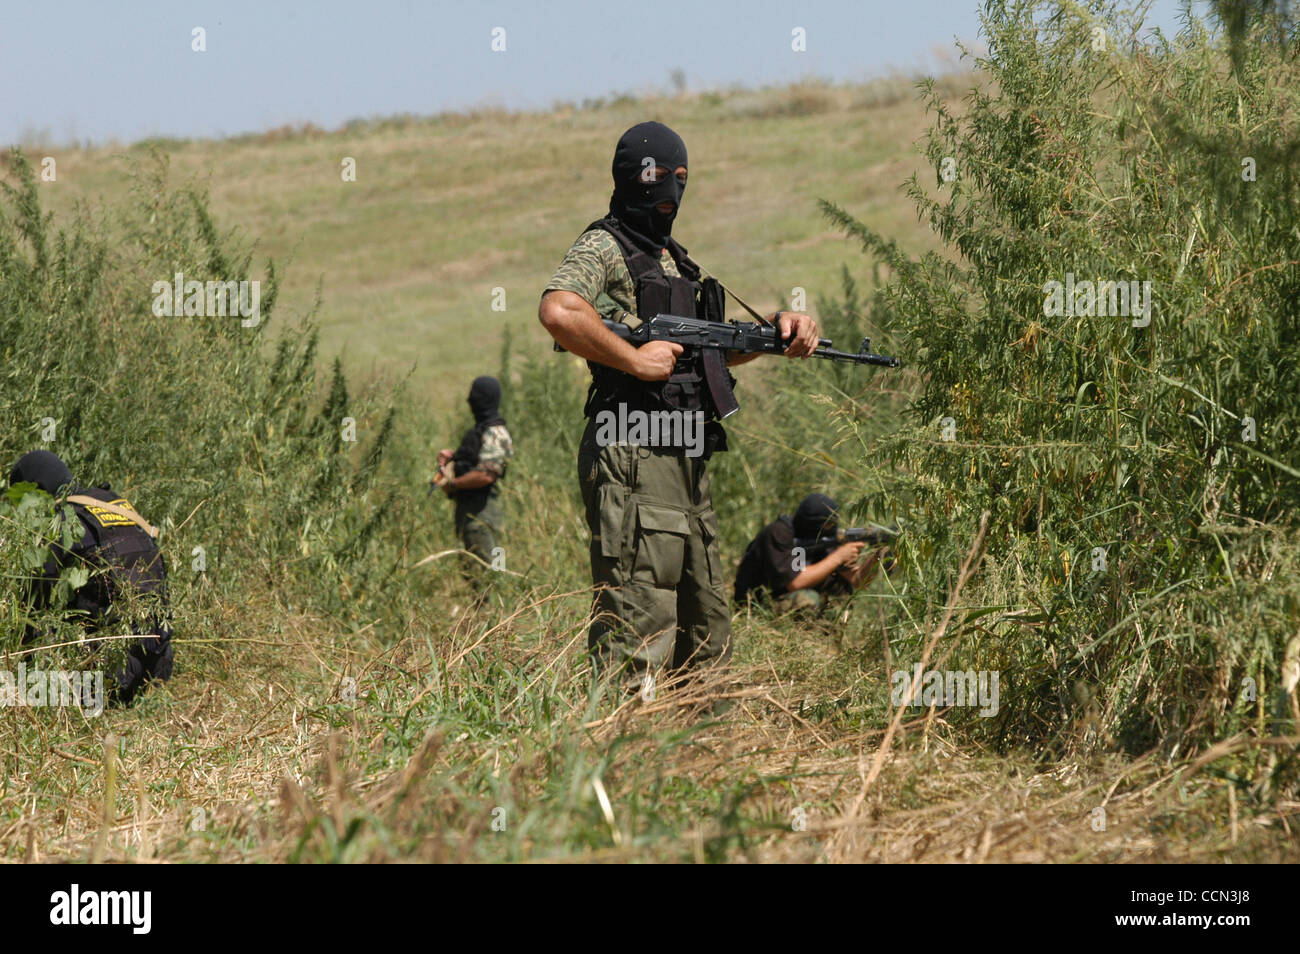 Anti-drug operation by special chechen forces. - Stock Image